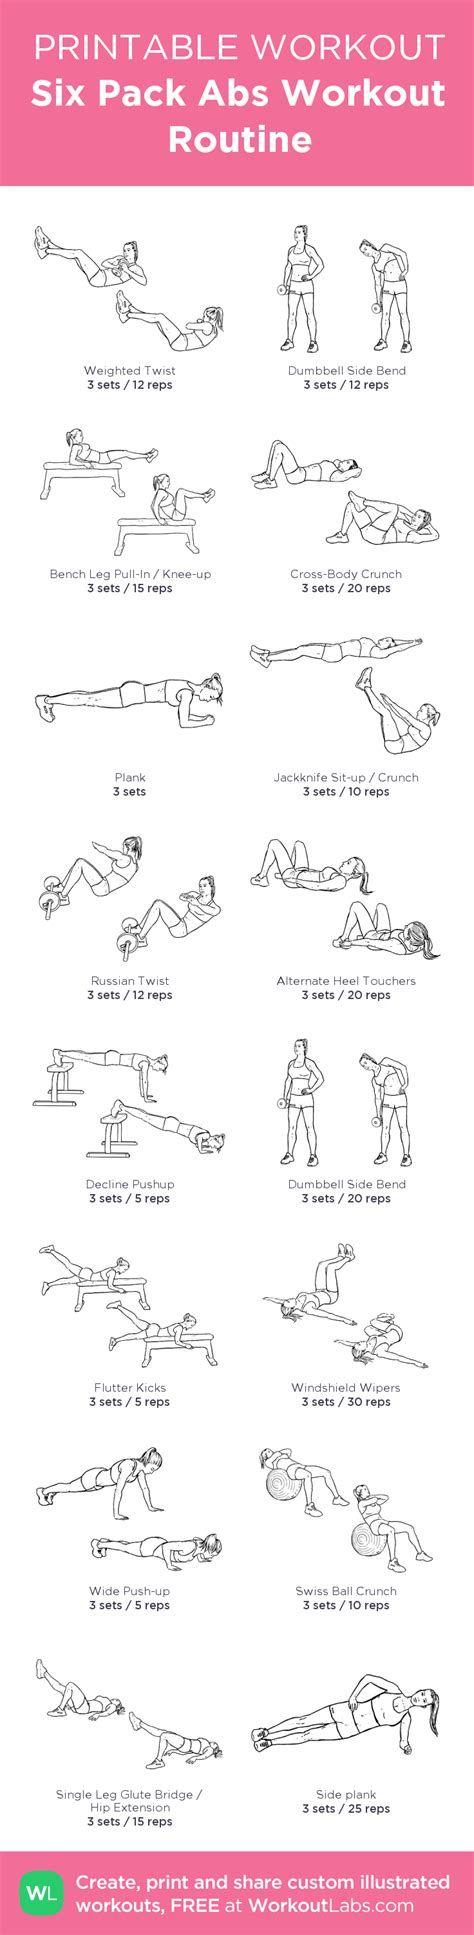 printable workout plan with pictures six pack abs workout routine my custom printable workout